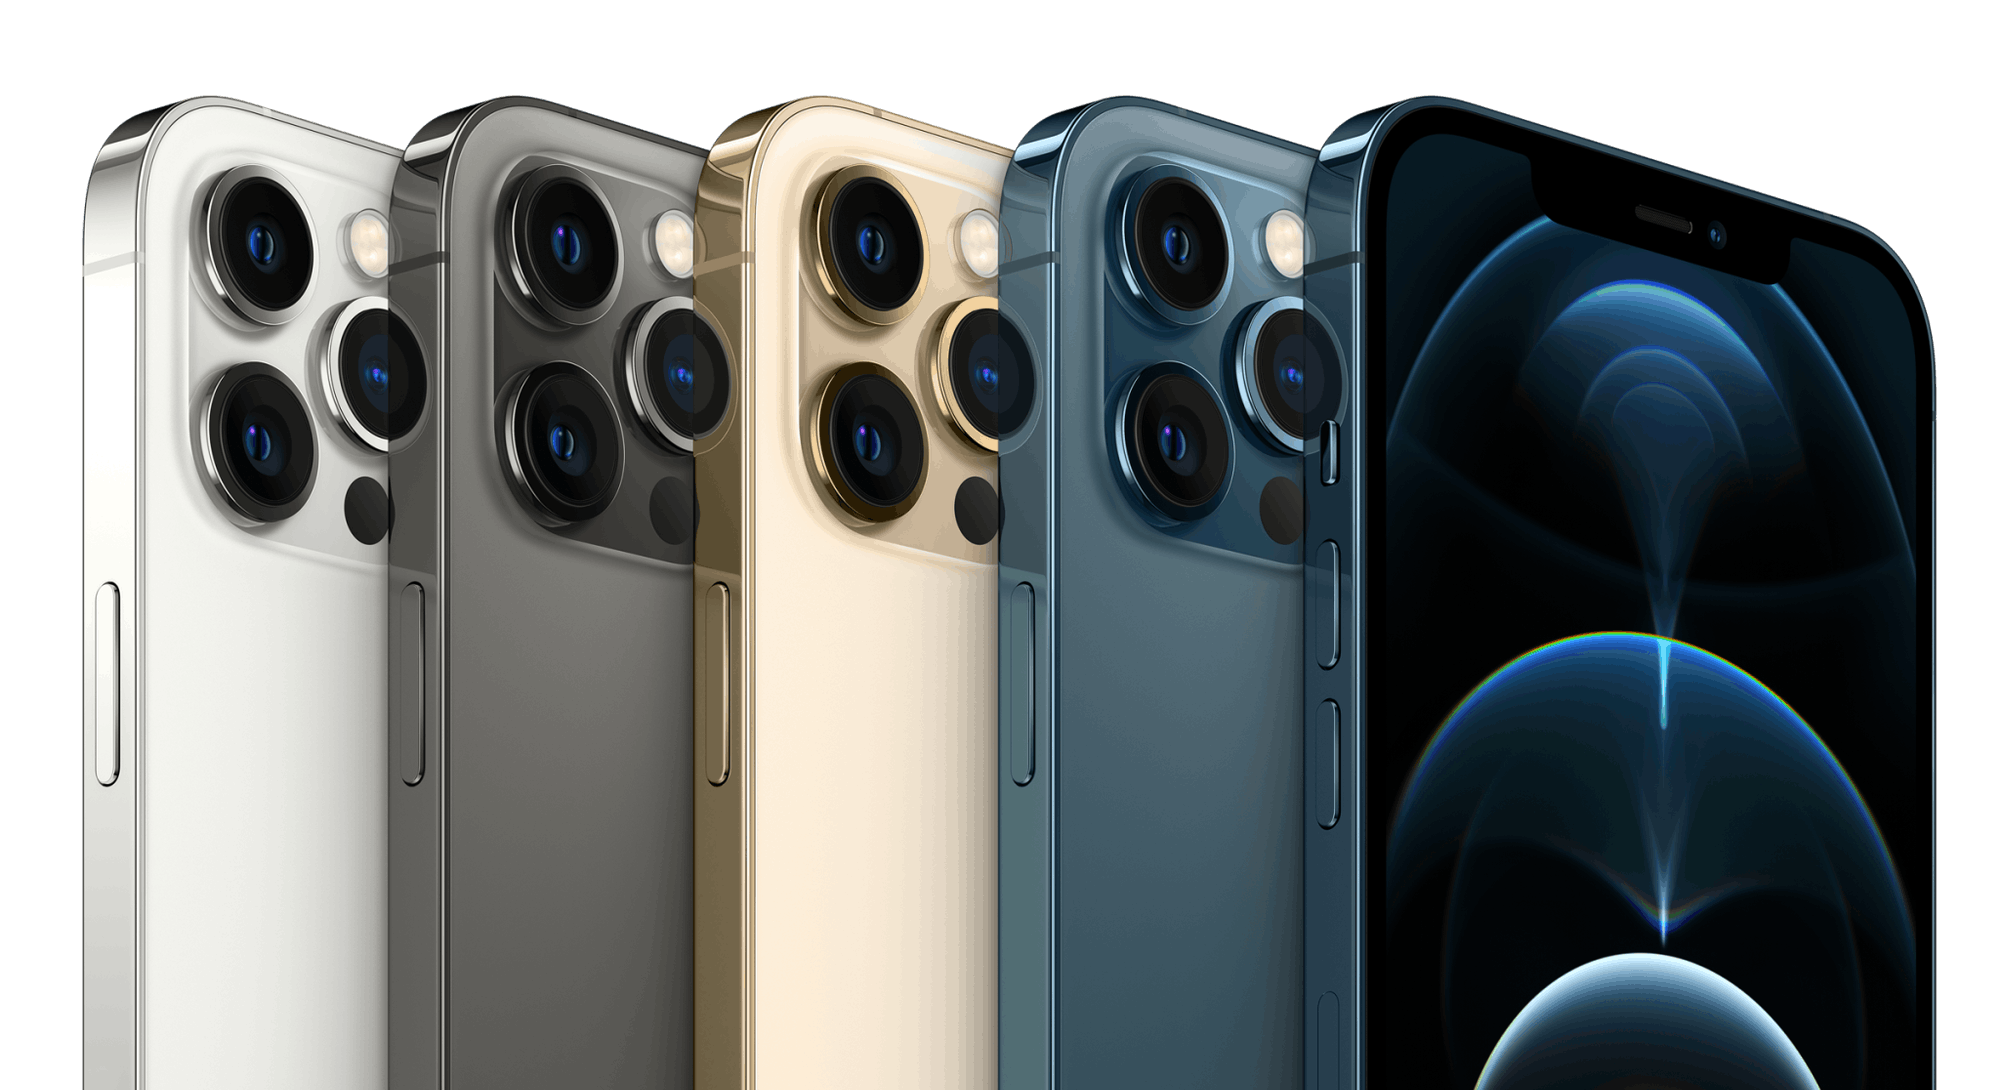 iPhone 12 Pro lineup